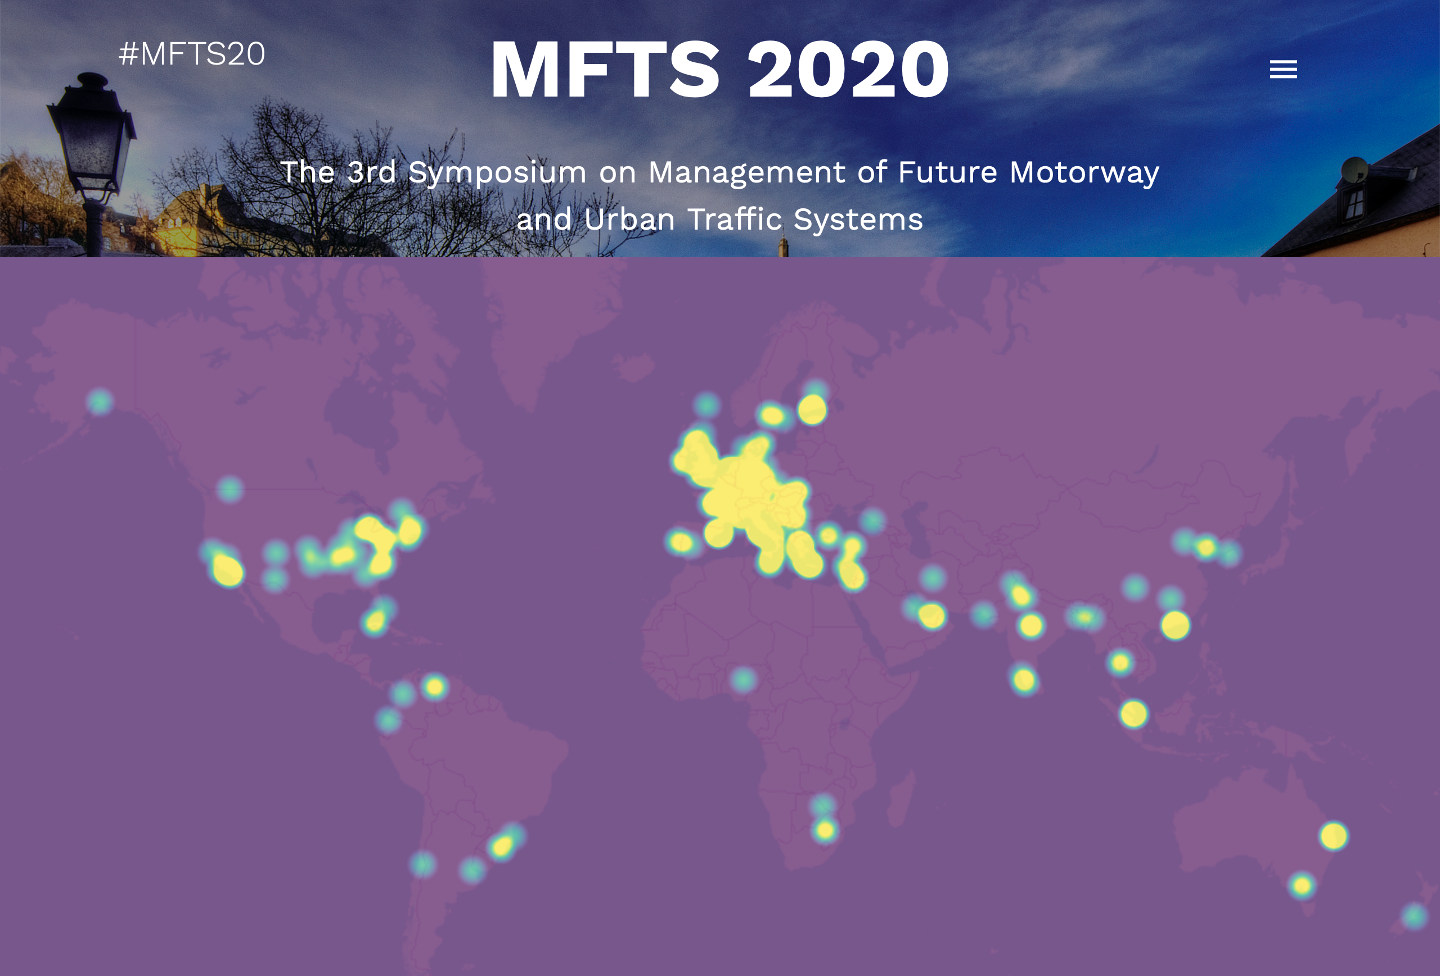 A geographical visualisation of the MFTS participants worldwide coverage